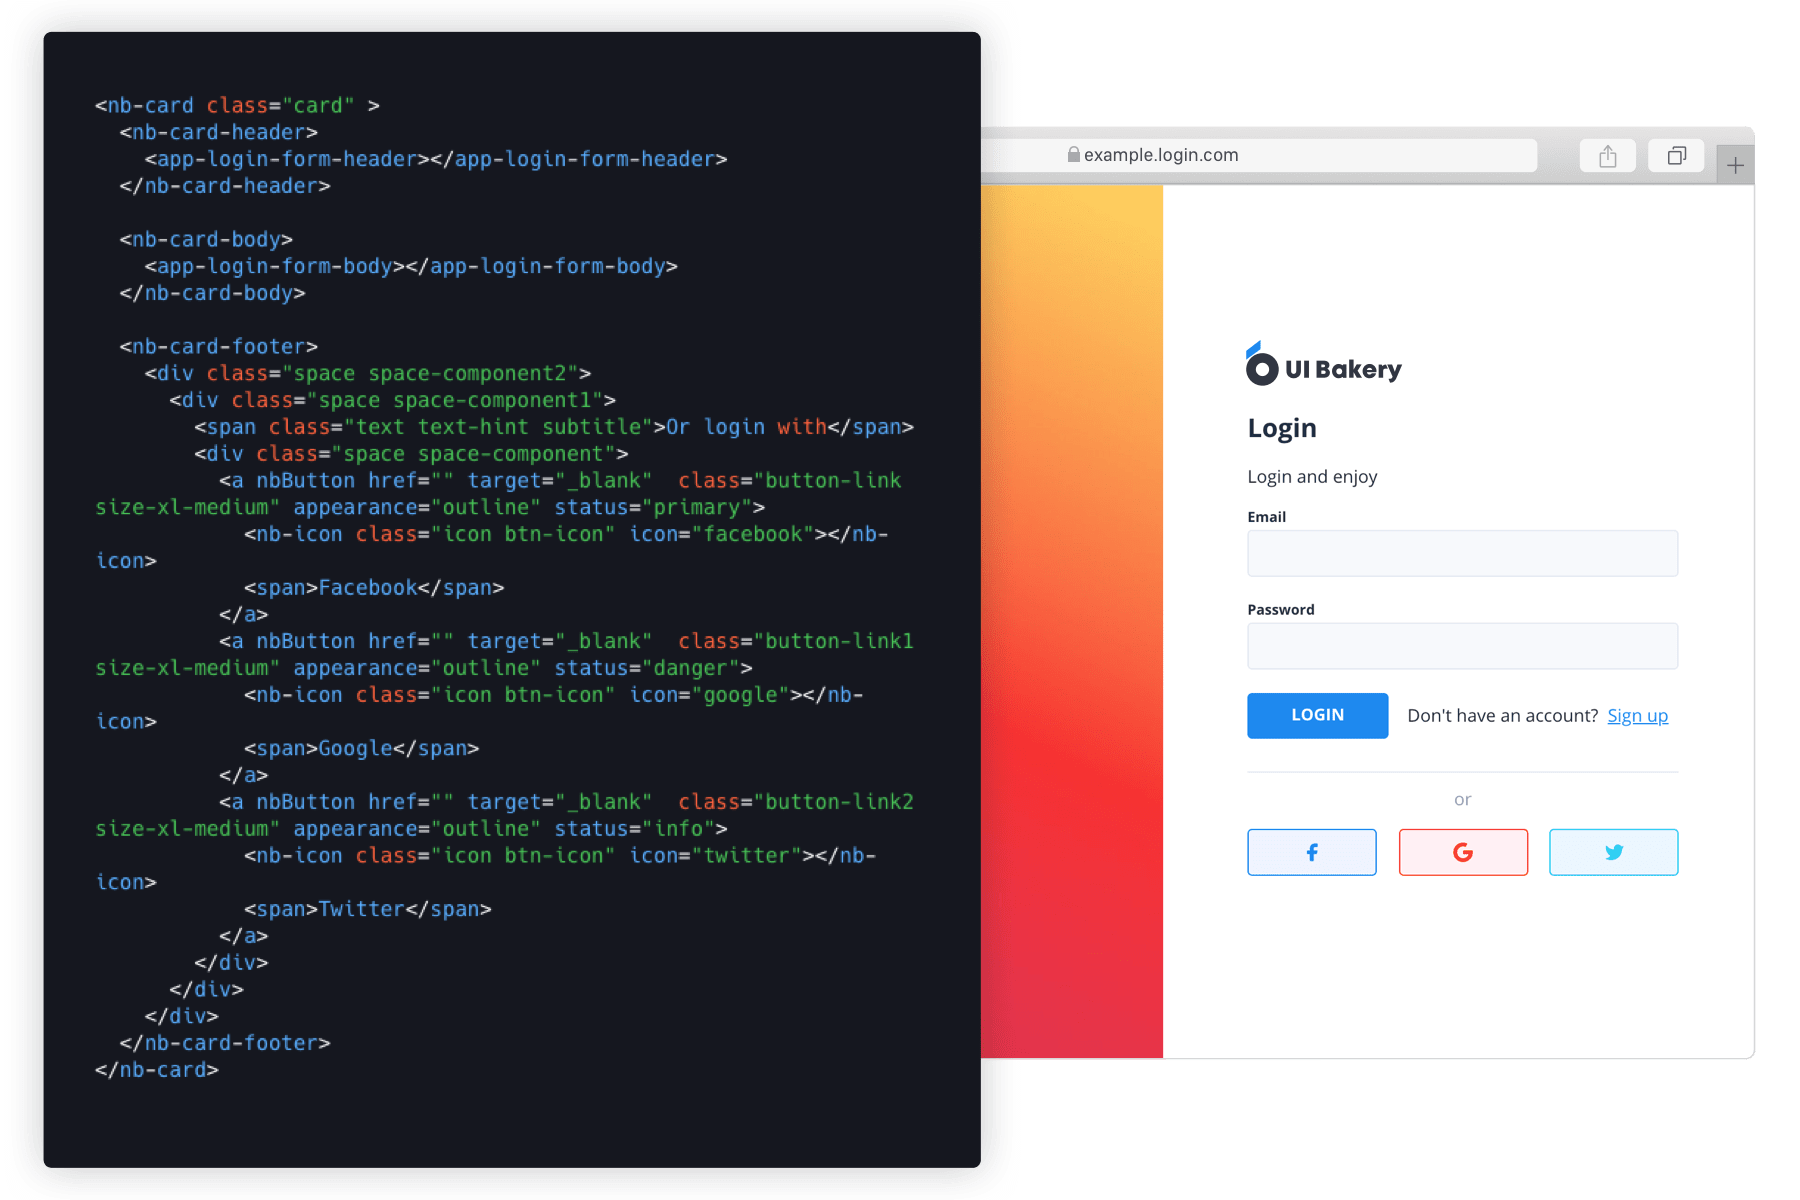 Low code web app builder for creating a login page without coding